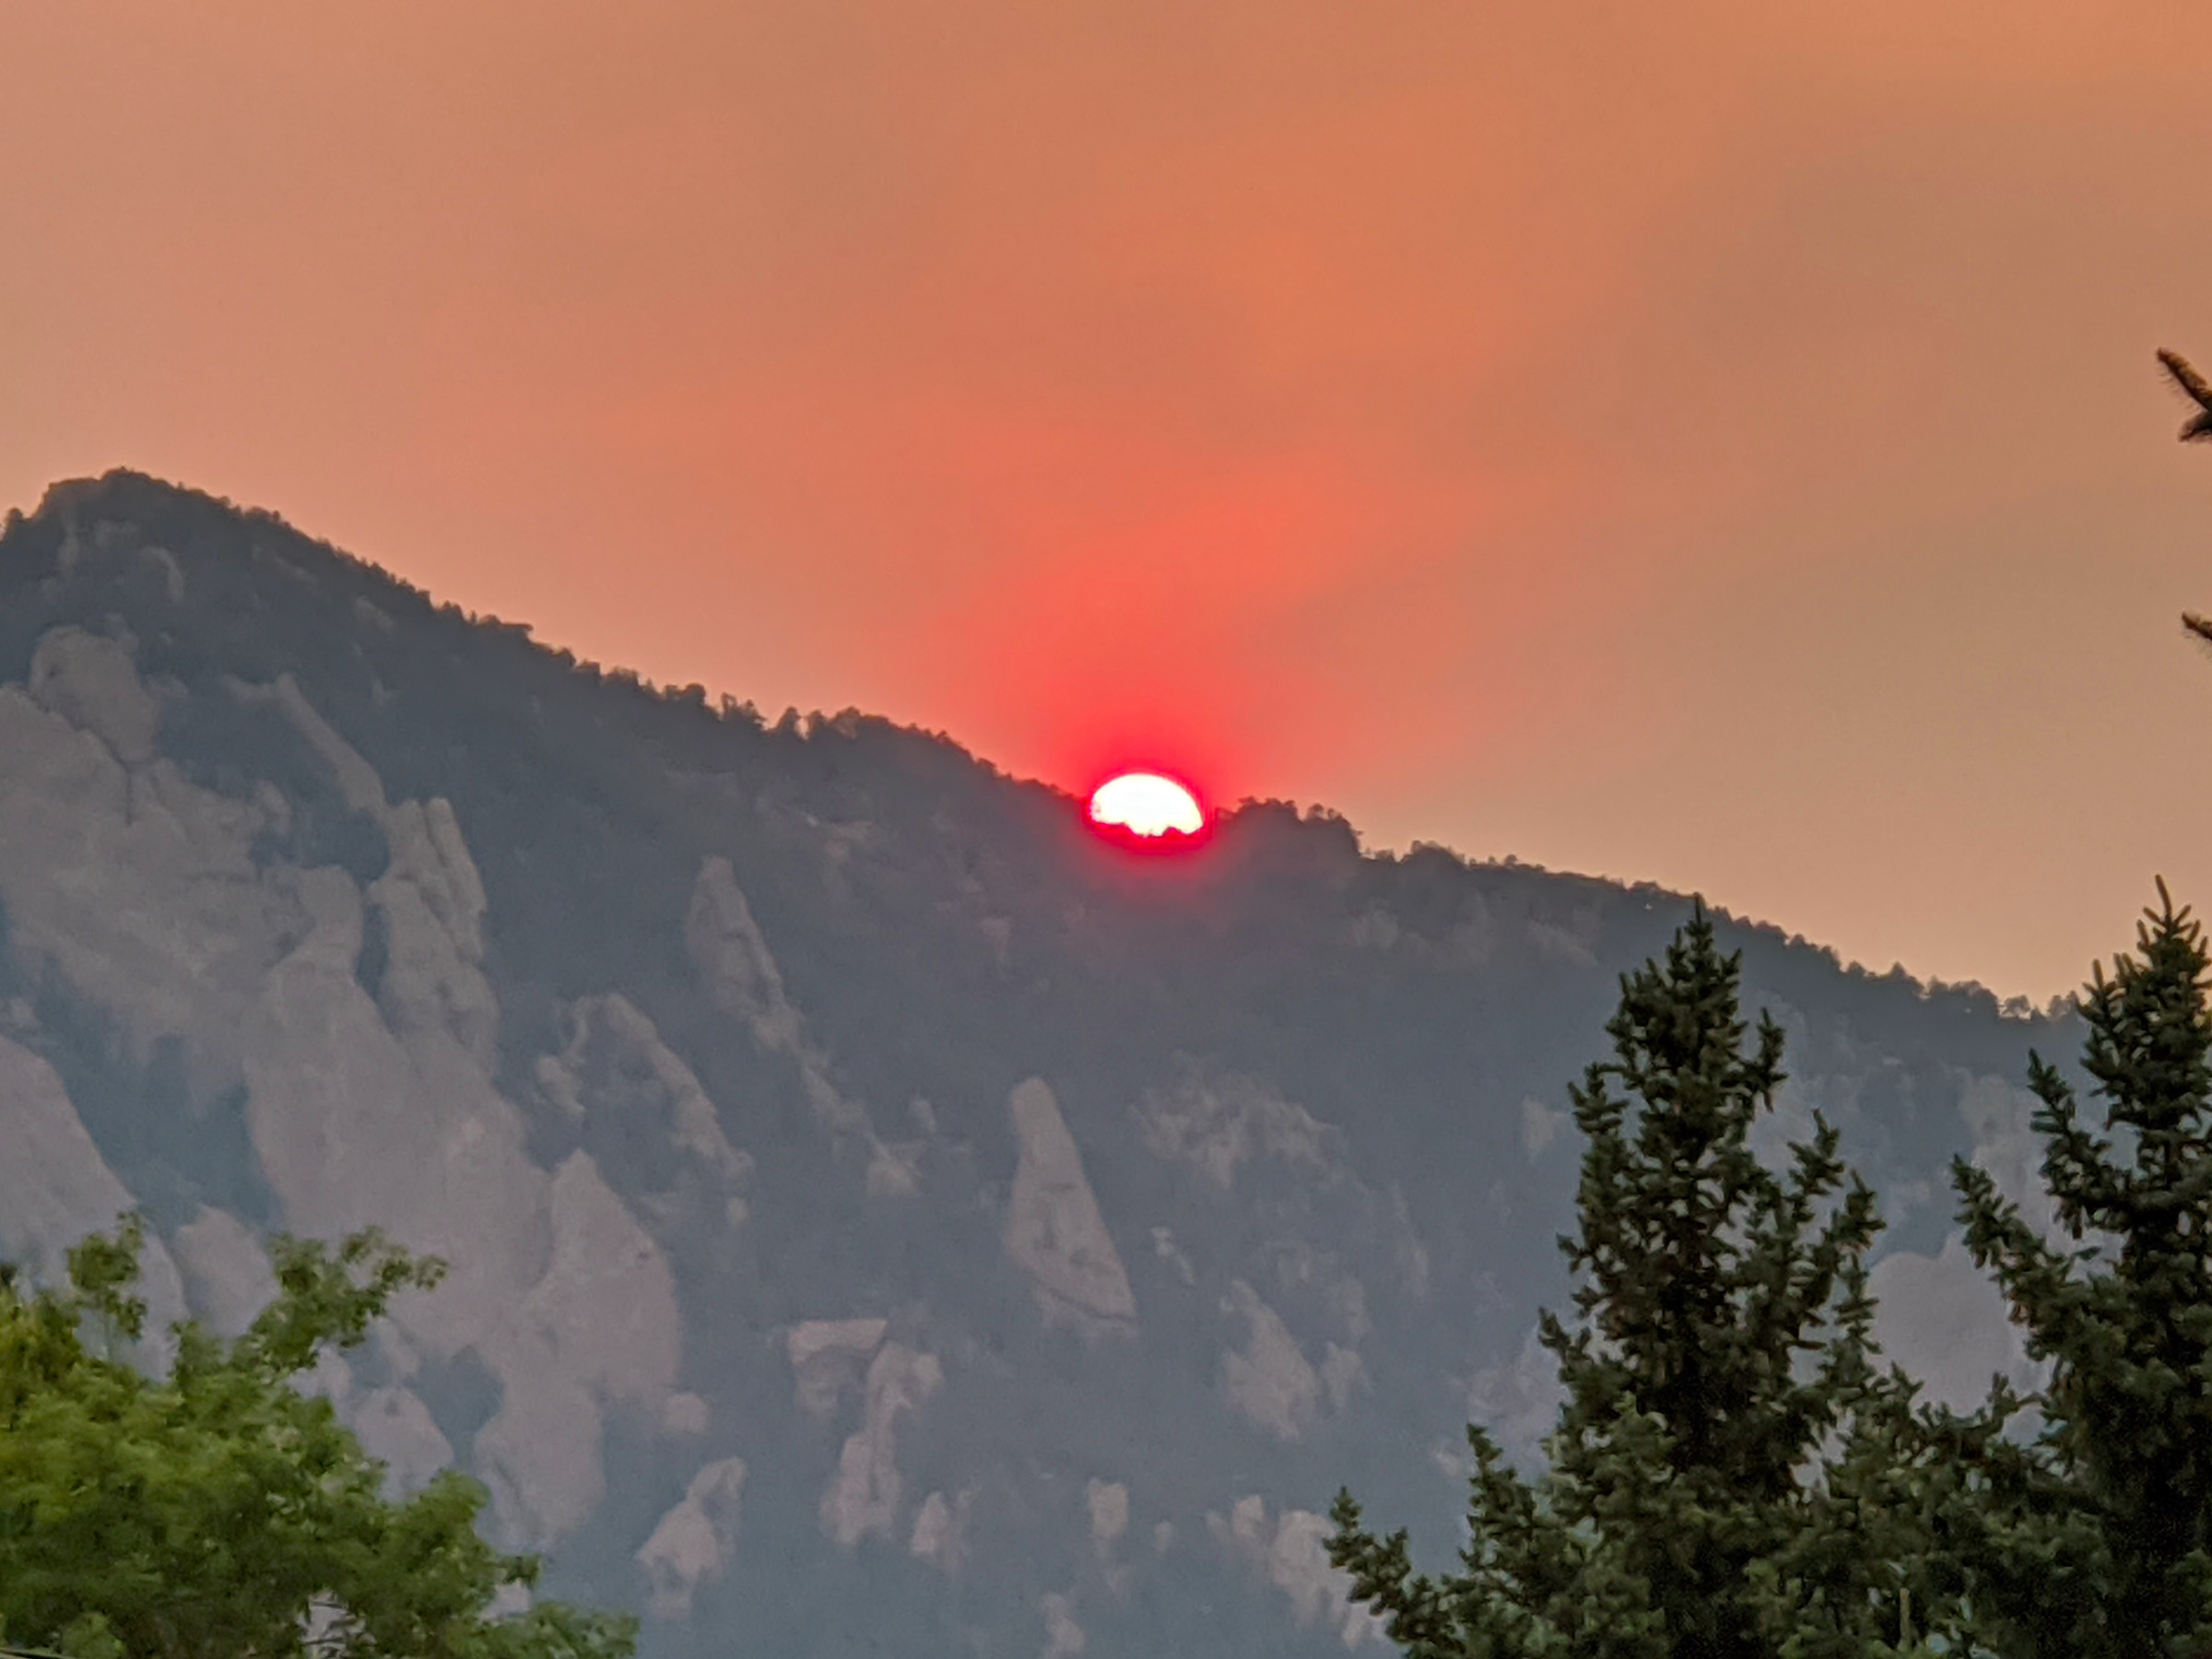 August wildfire smoke impacts Boulder aerosol measurements